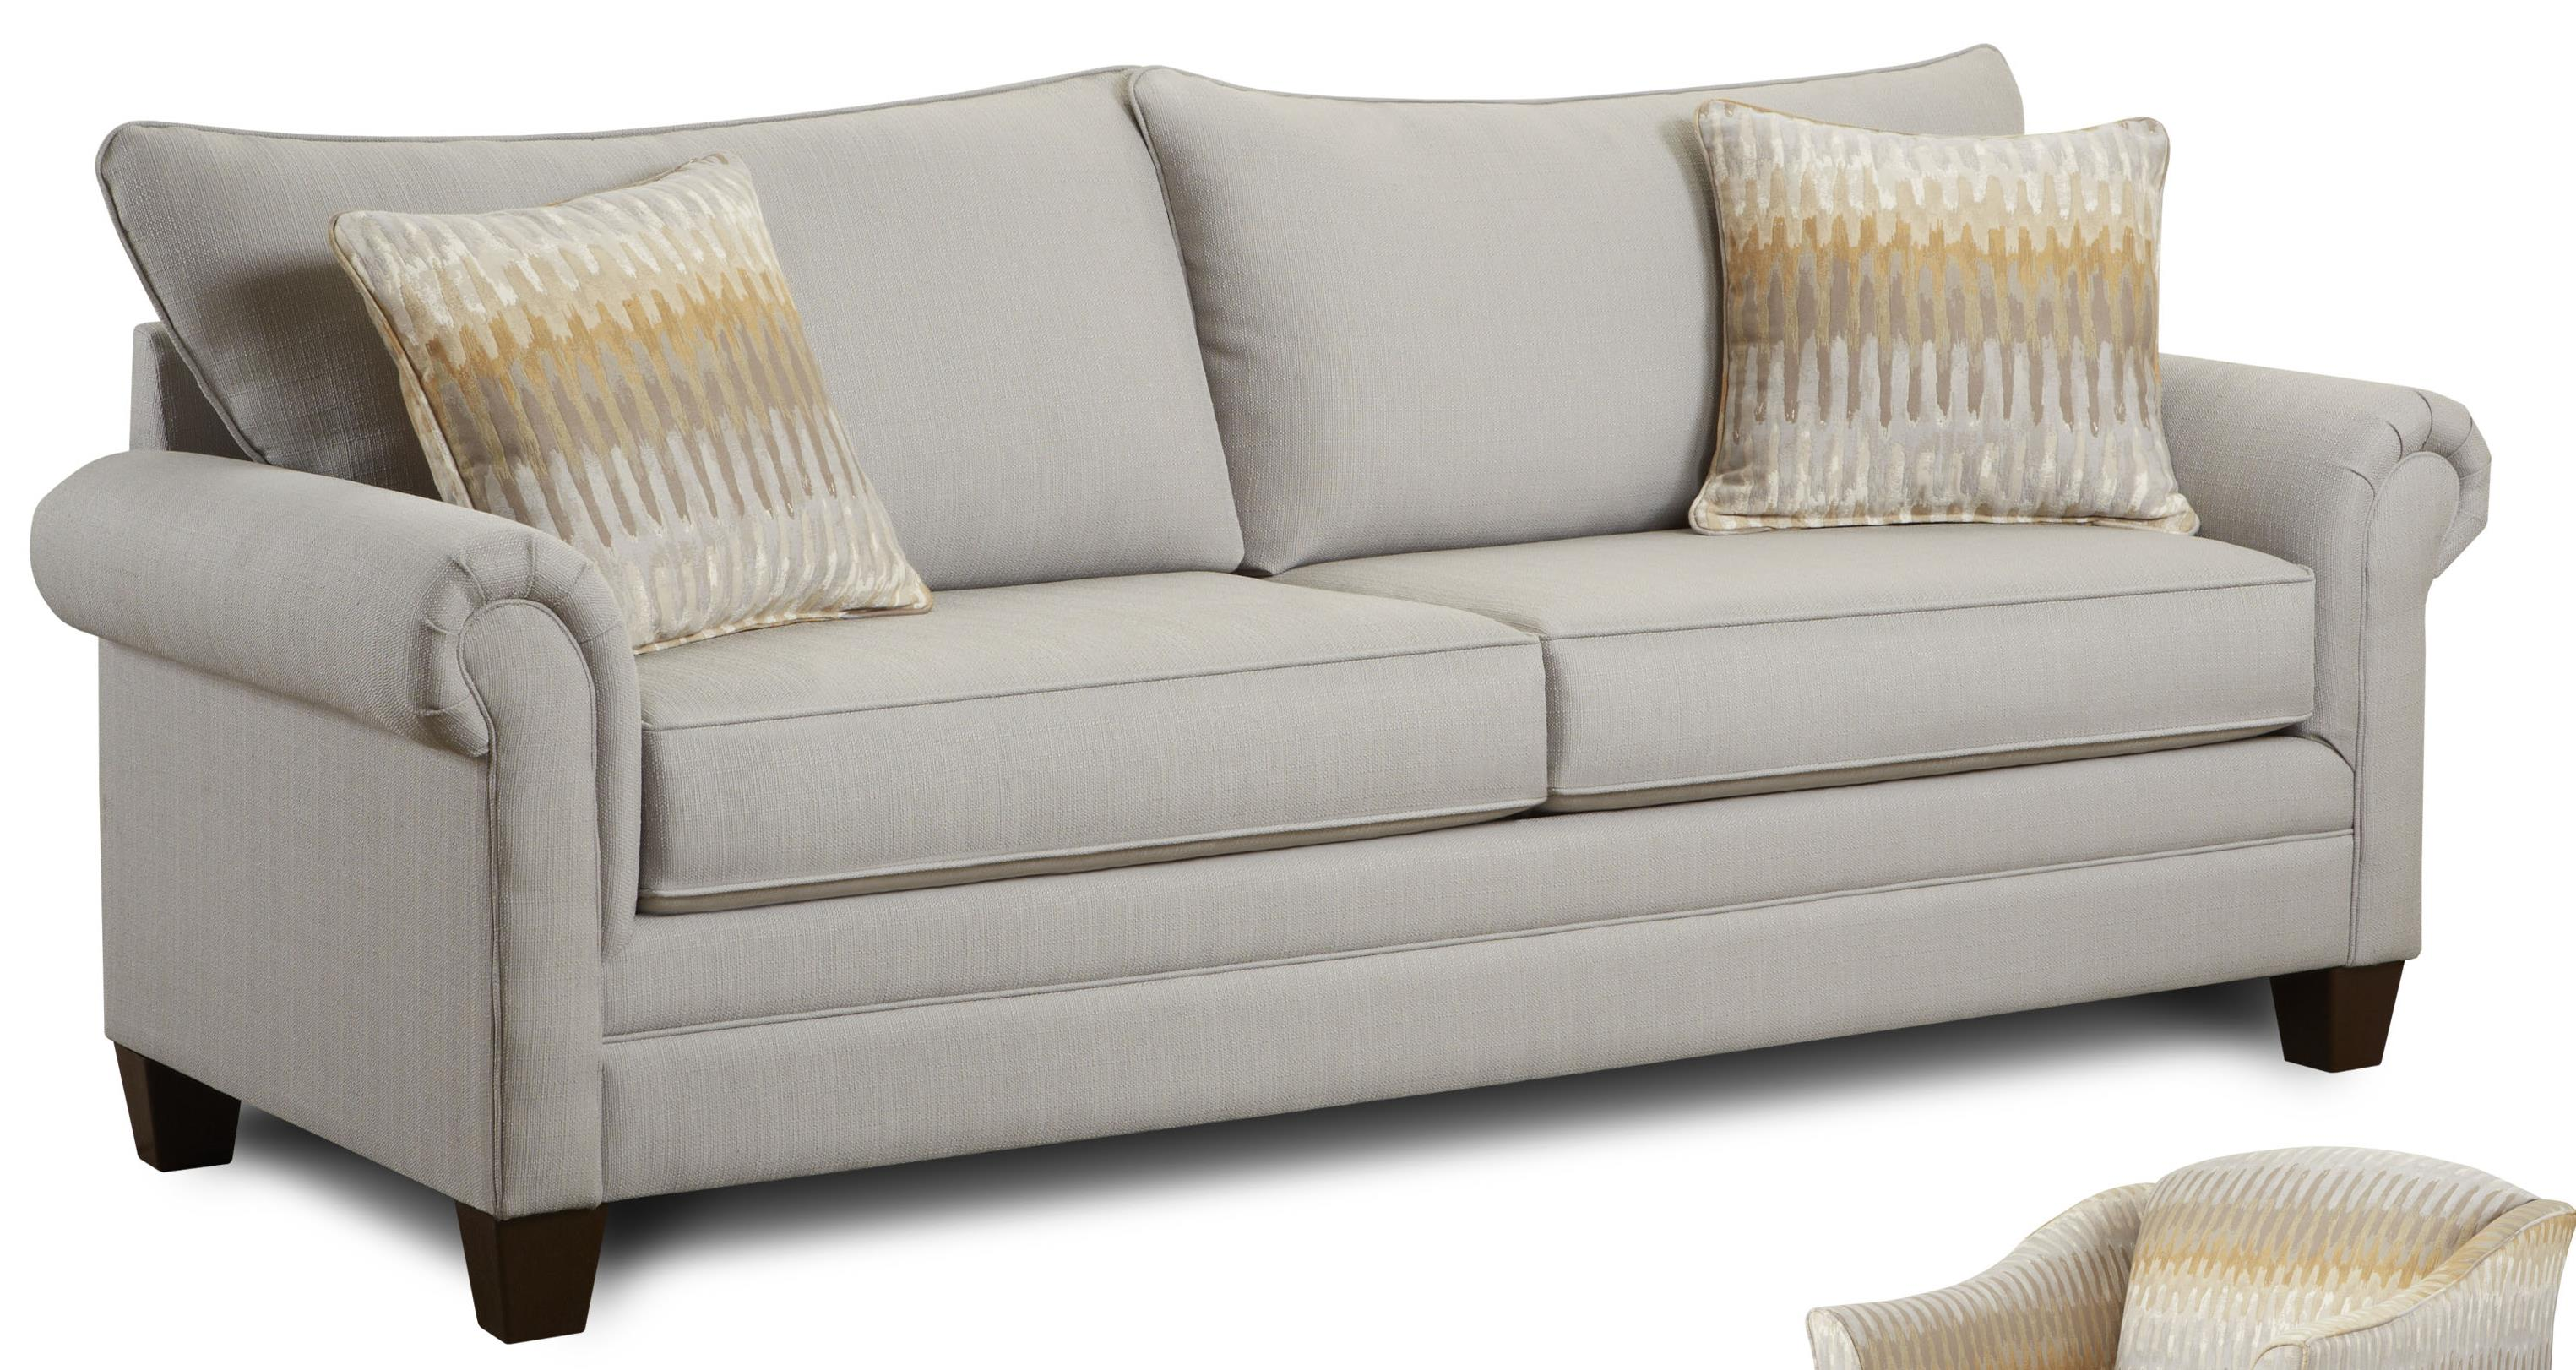 Stationary Sofa With Rolled Arms And Exposed Wooden Legs